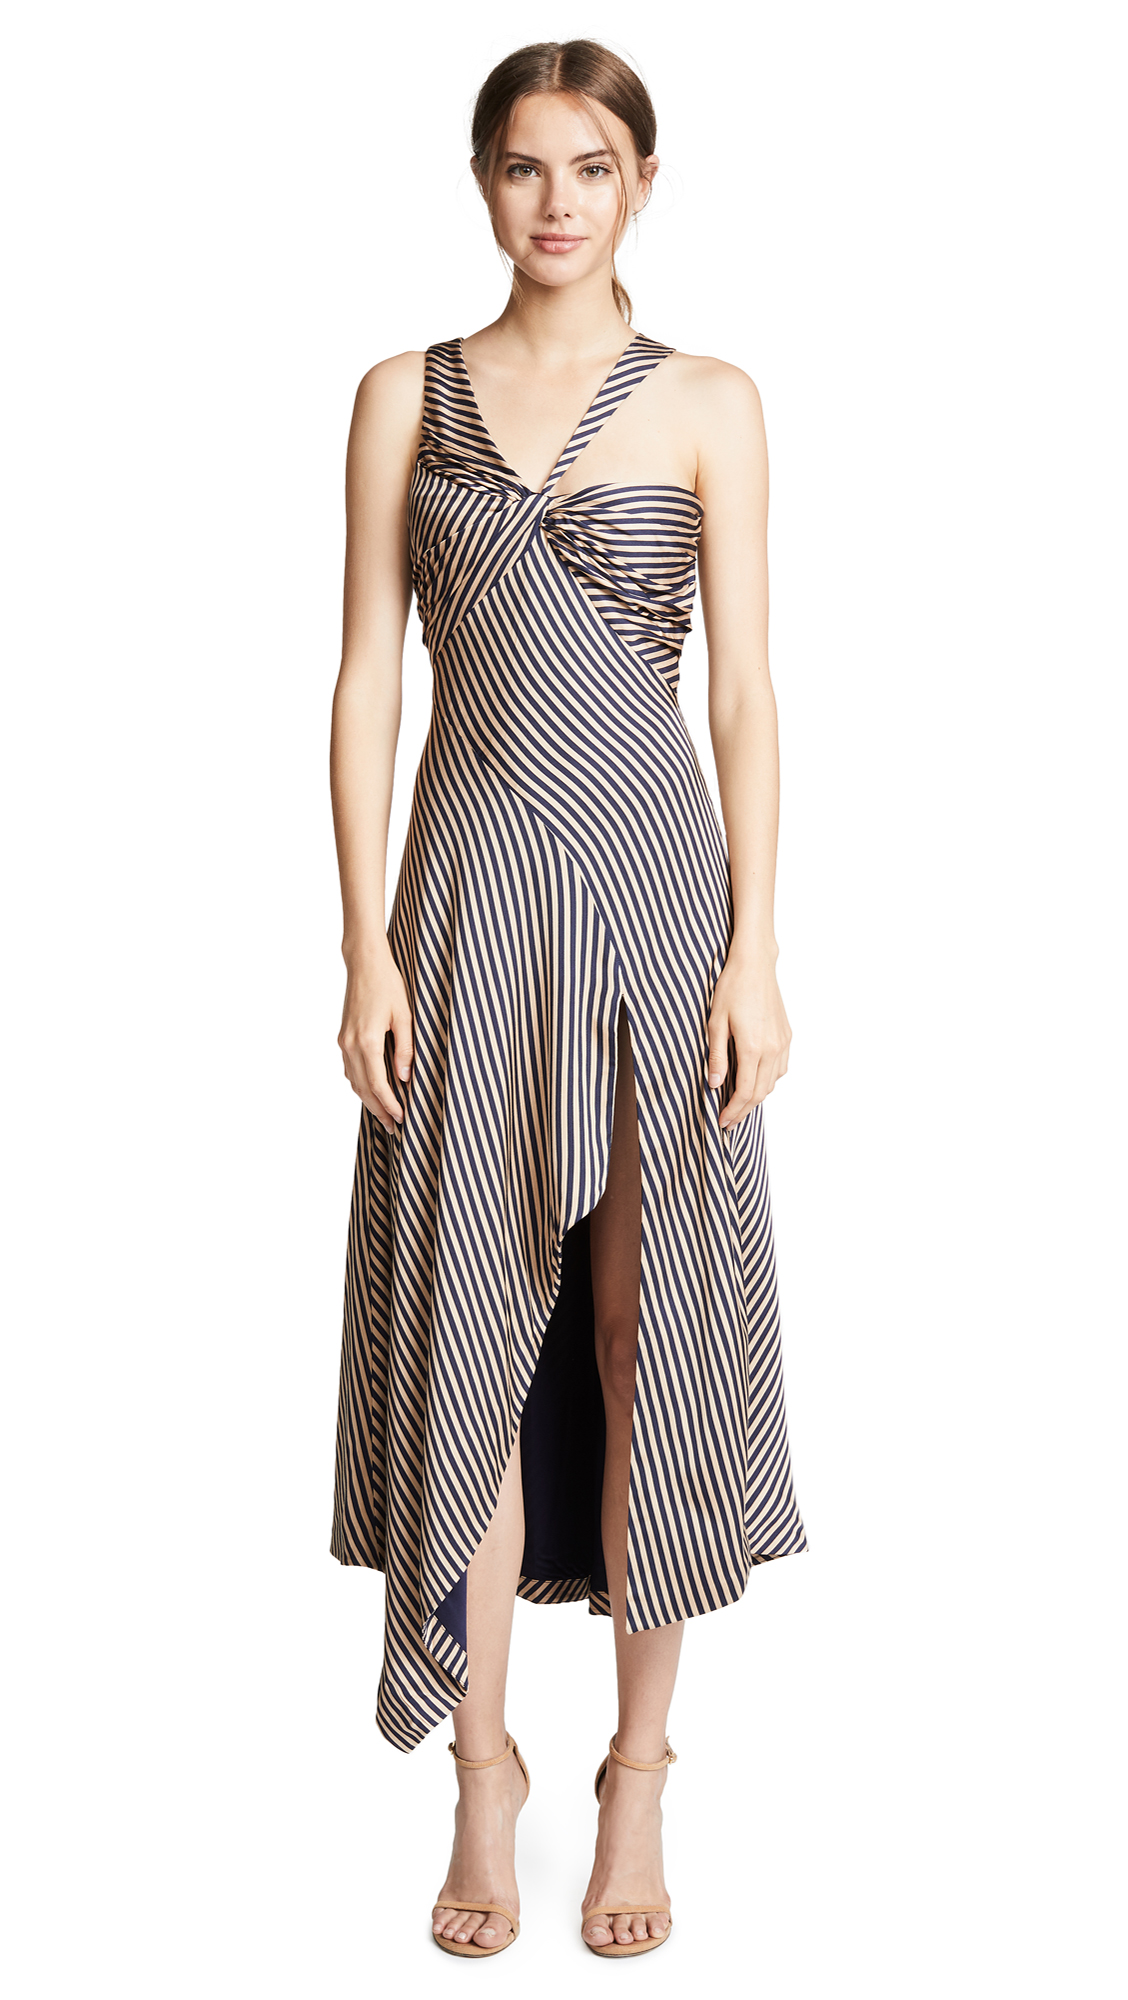 Jonathan Simkhai Stripe Twist Ruffle Dress